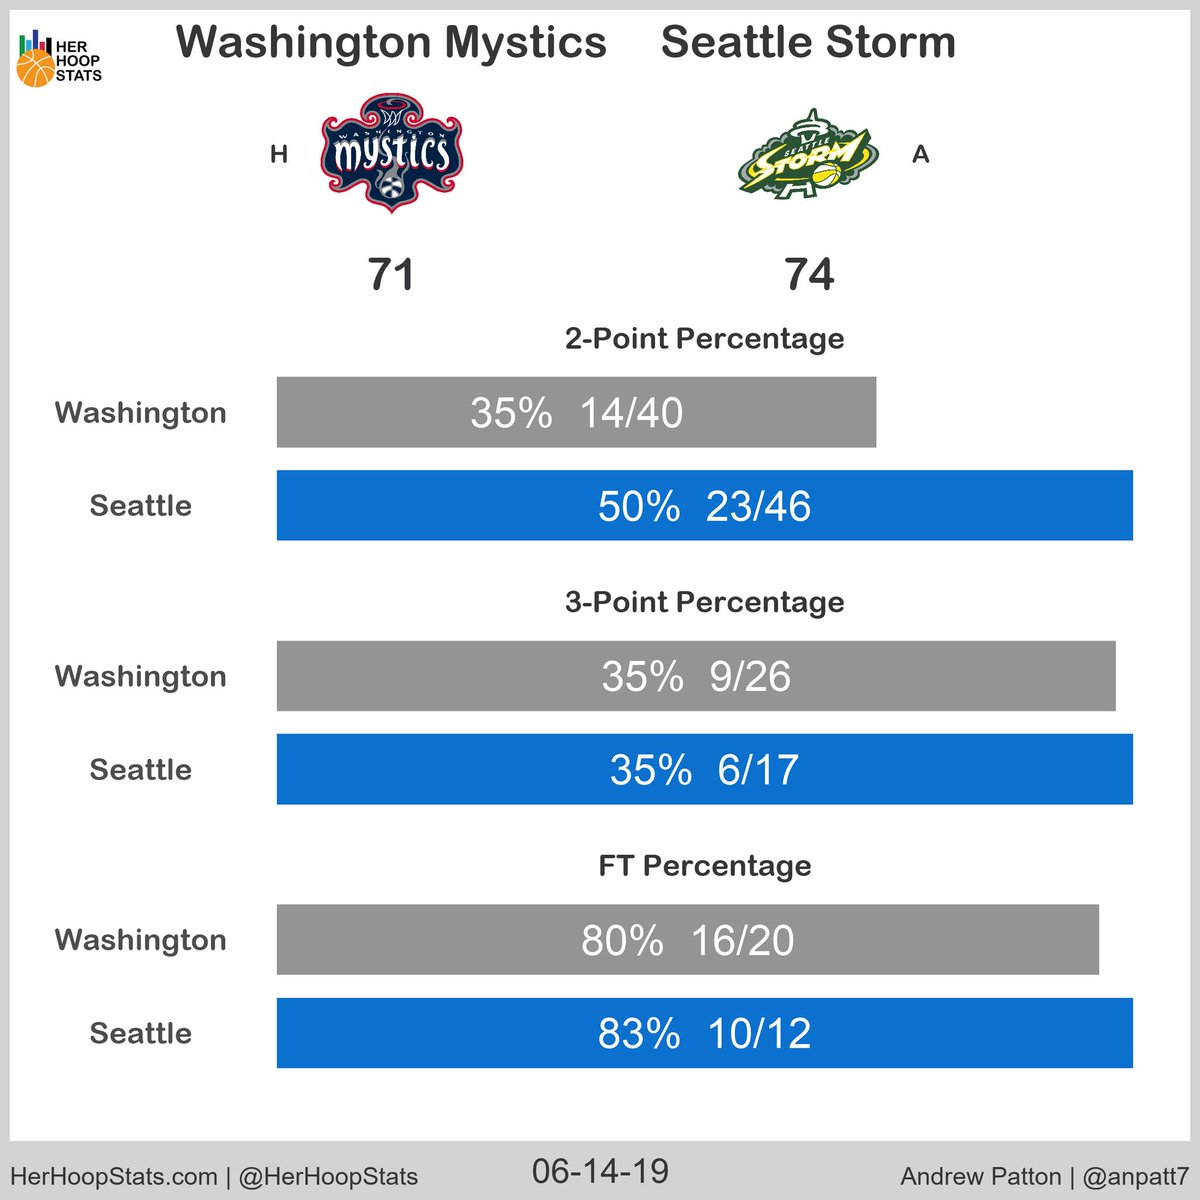 The @seattlestorm travelled to the @WashMystics and grabbed a quality road win 74-71. The Mystics were getting mostly iron on their midrange, and the Storm did just enough from two to overcome the 3 and FT difference (graphics: @anpatt7) #TogetherDC #WeRepSeattle  #WNBA